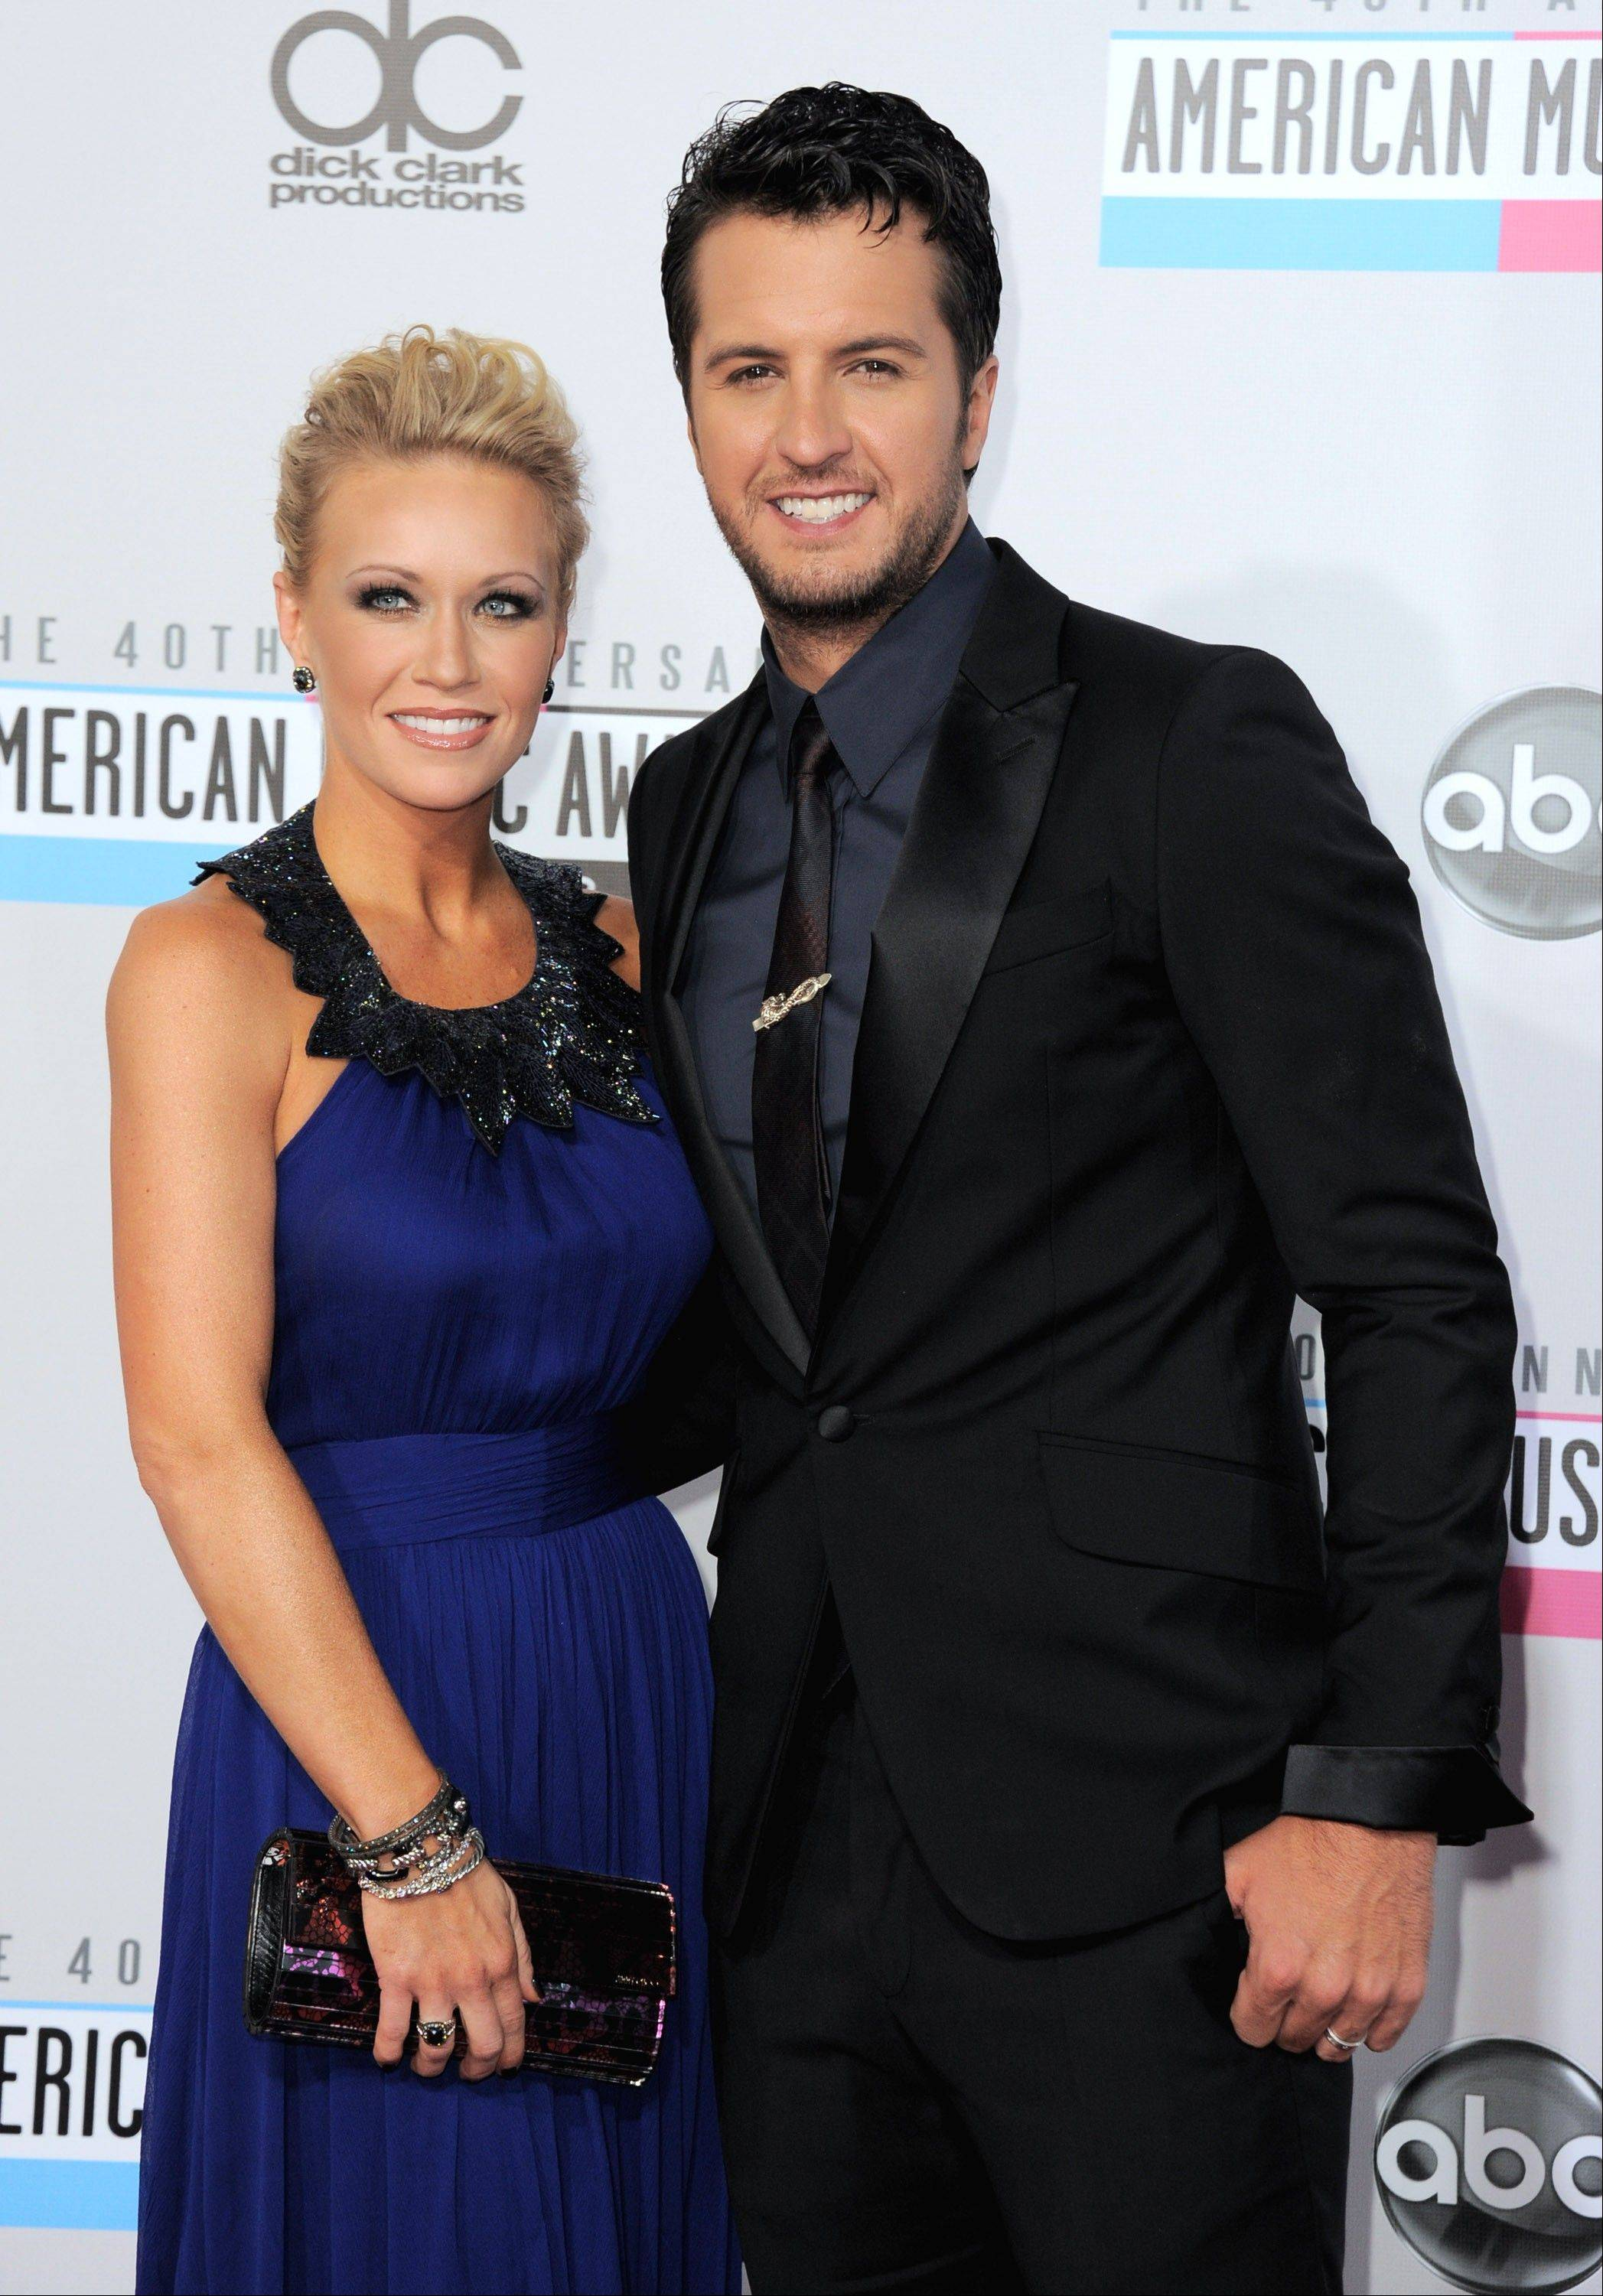 Country singer Luke Bryan, right, and Caroline Boyer arrive at the 40th Anniversary American Music Awards.